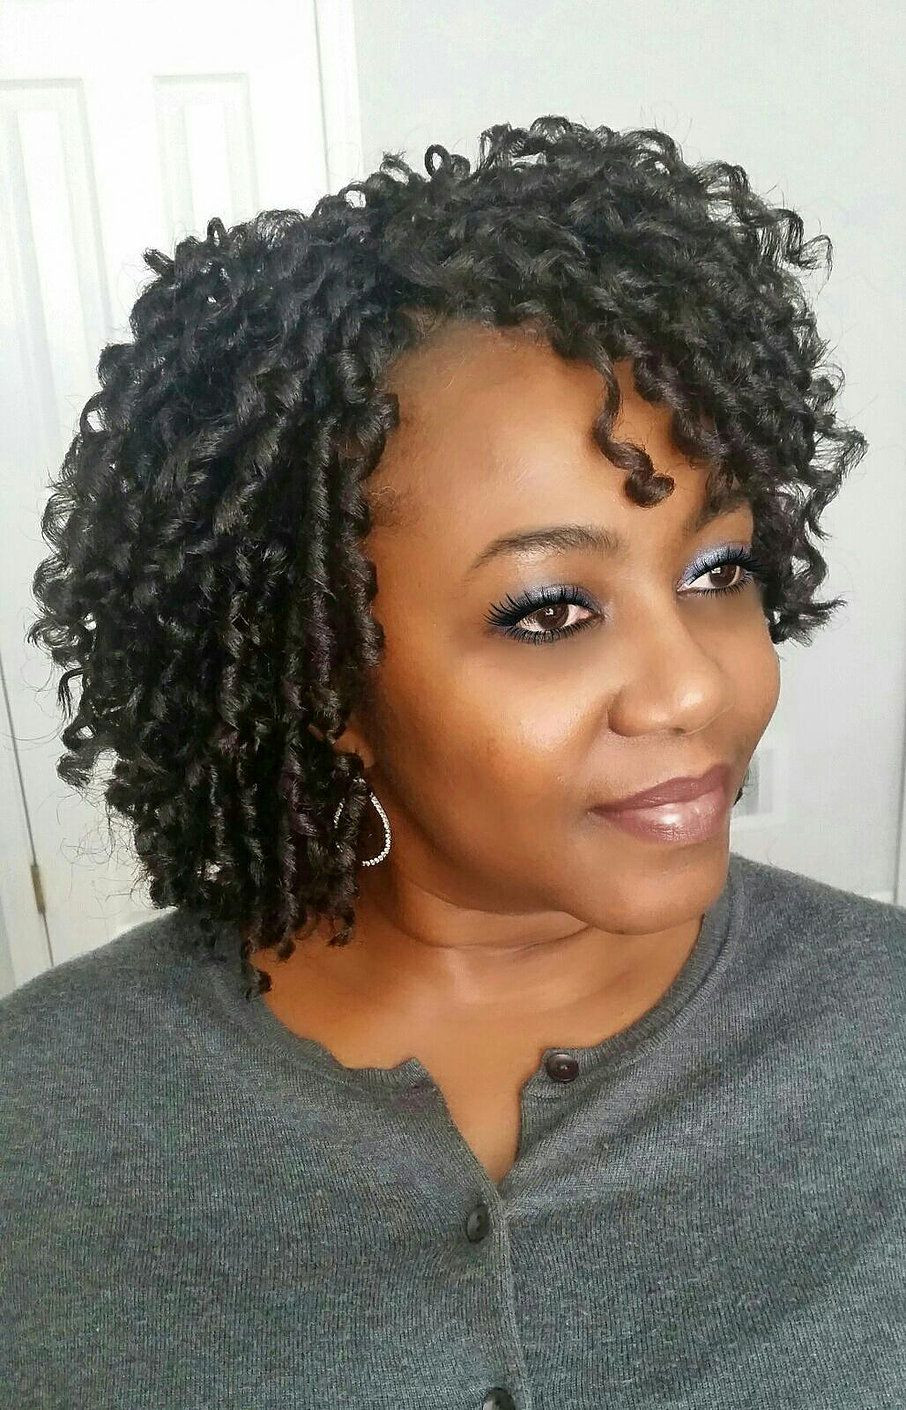 Awesome Crochet Braids by Twana Natural Hair Styles Crochet Braids by Twana Of Attractive 41 Photos Crochet Braids by Twana